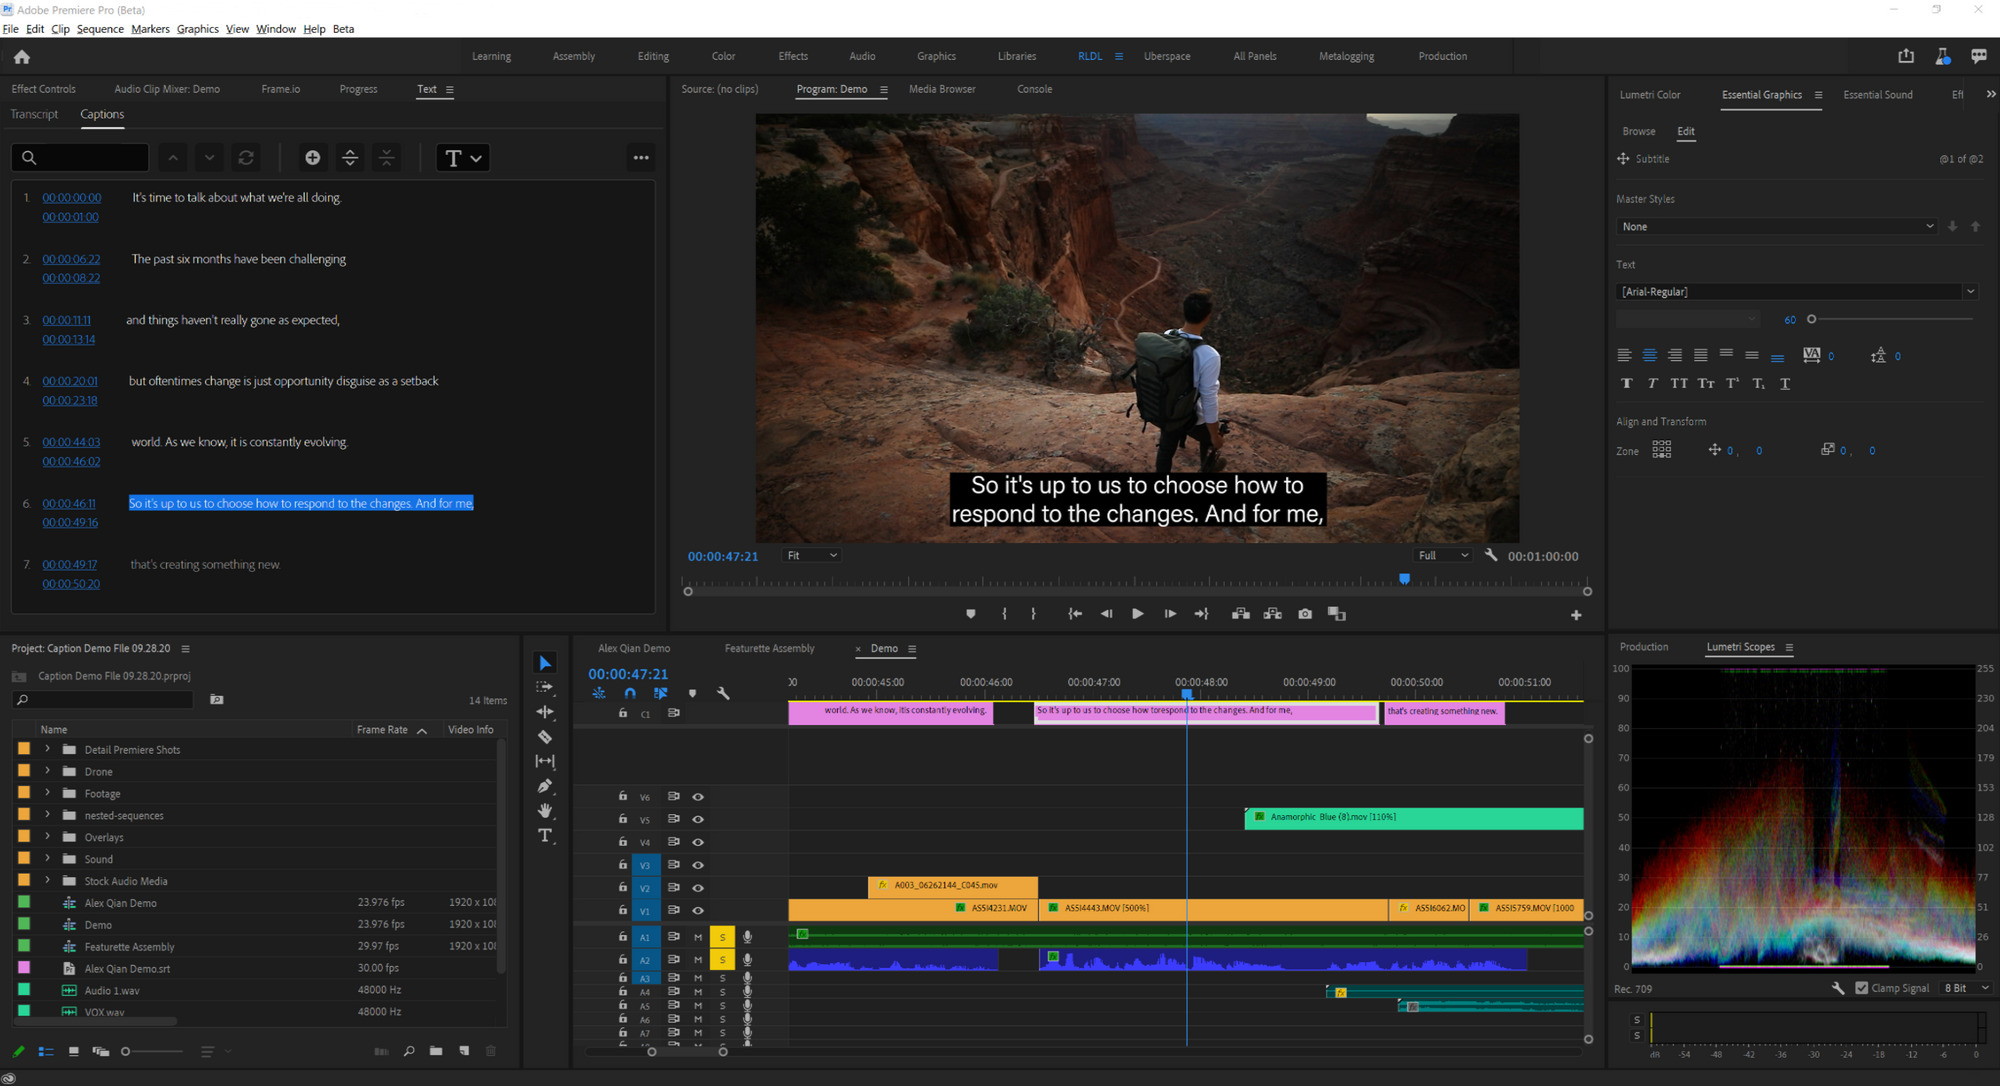 Adobe Premiere Pro caption track